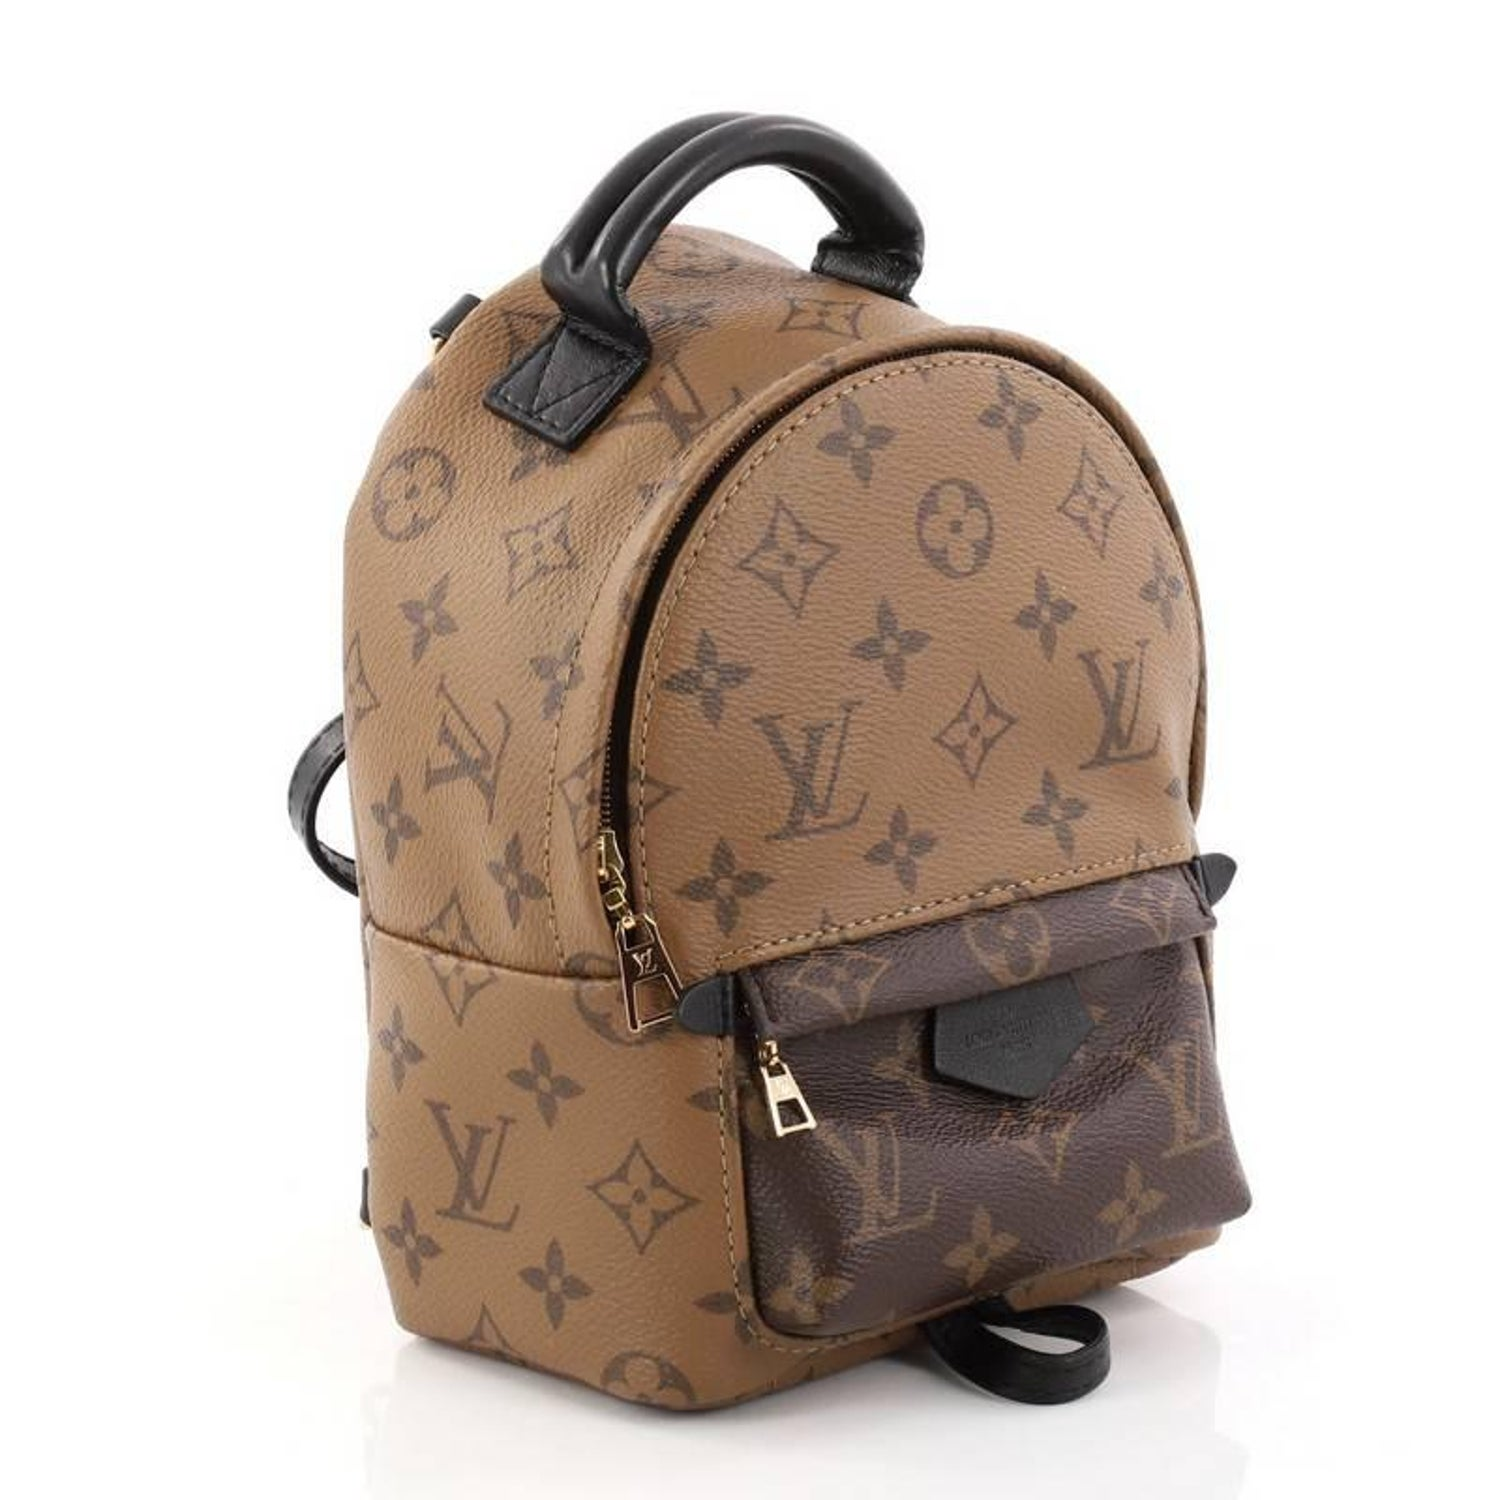 5bd1d6a198d Black And Red Lv Mini Backpack - CEAGESP